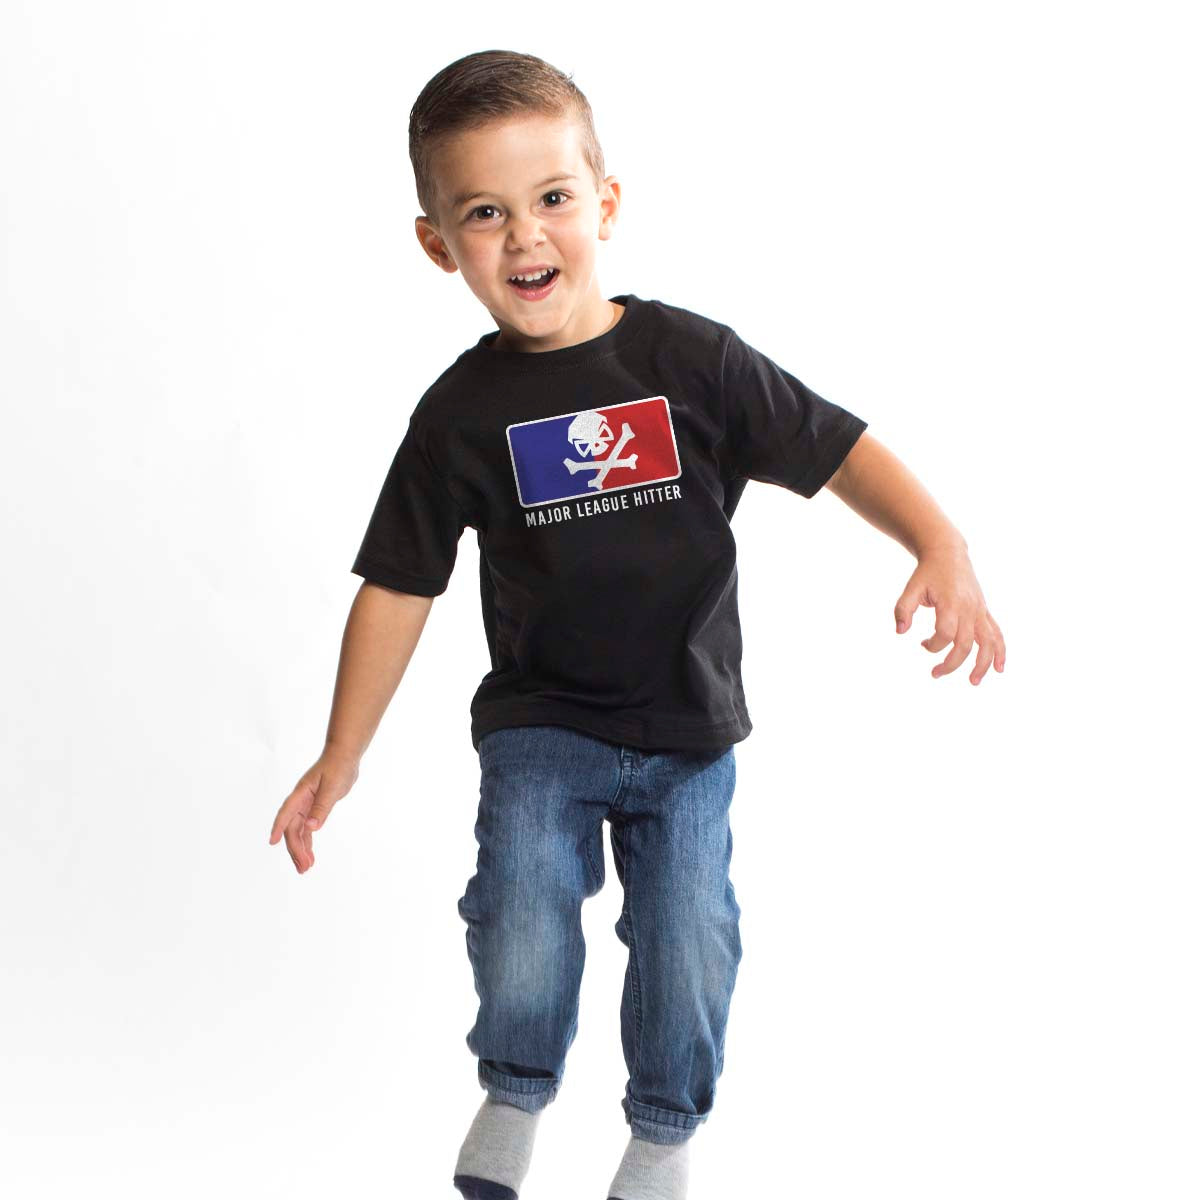 Major League Hitter - Youth - Black/RWB - T-Shirts - Pipe Hitters Union